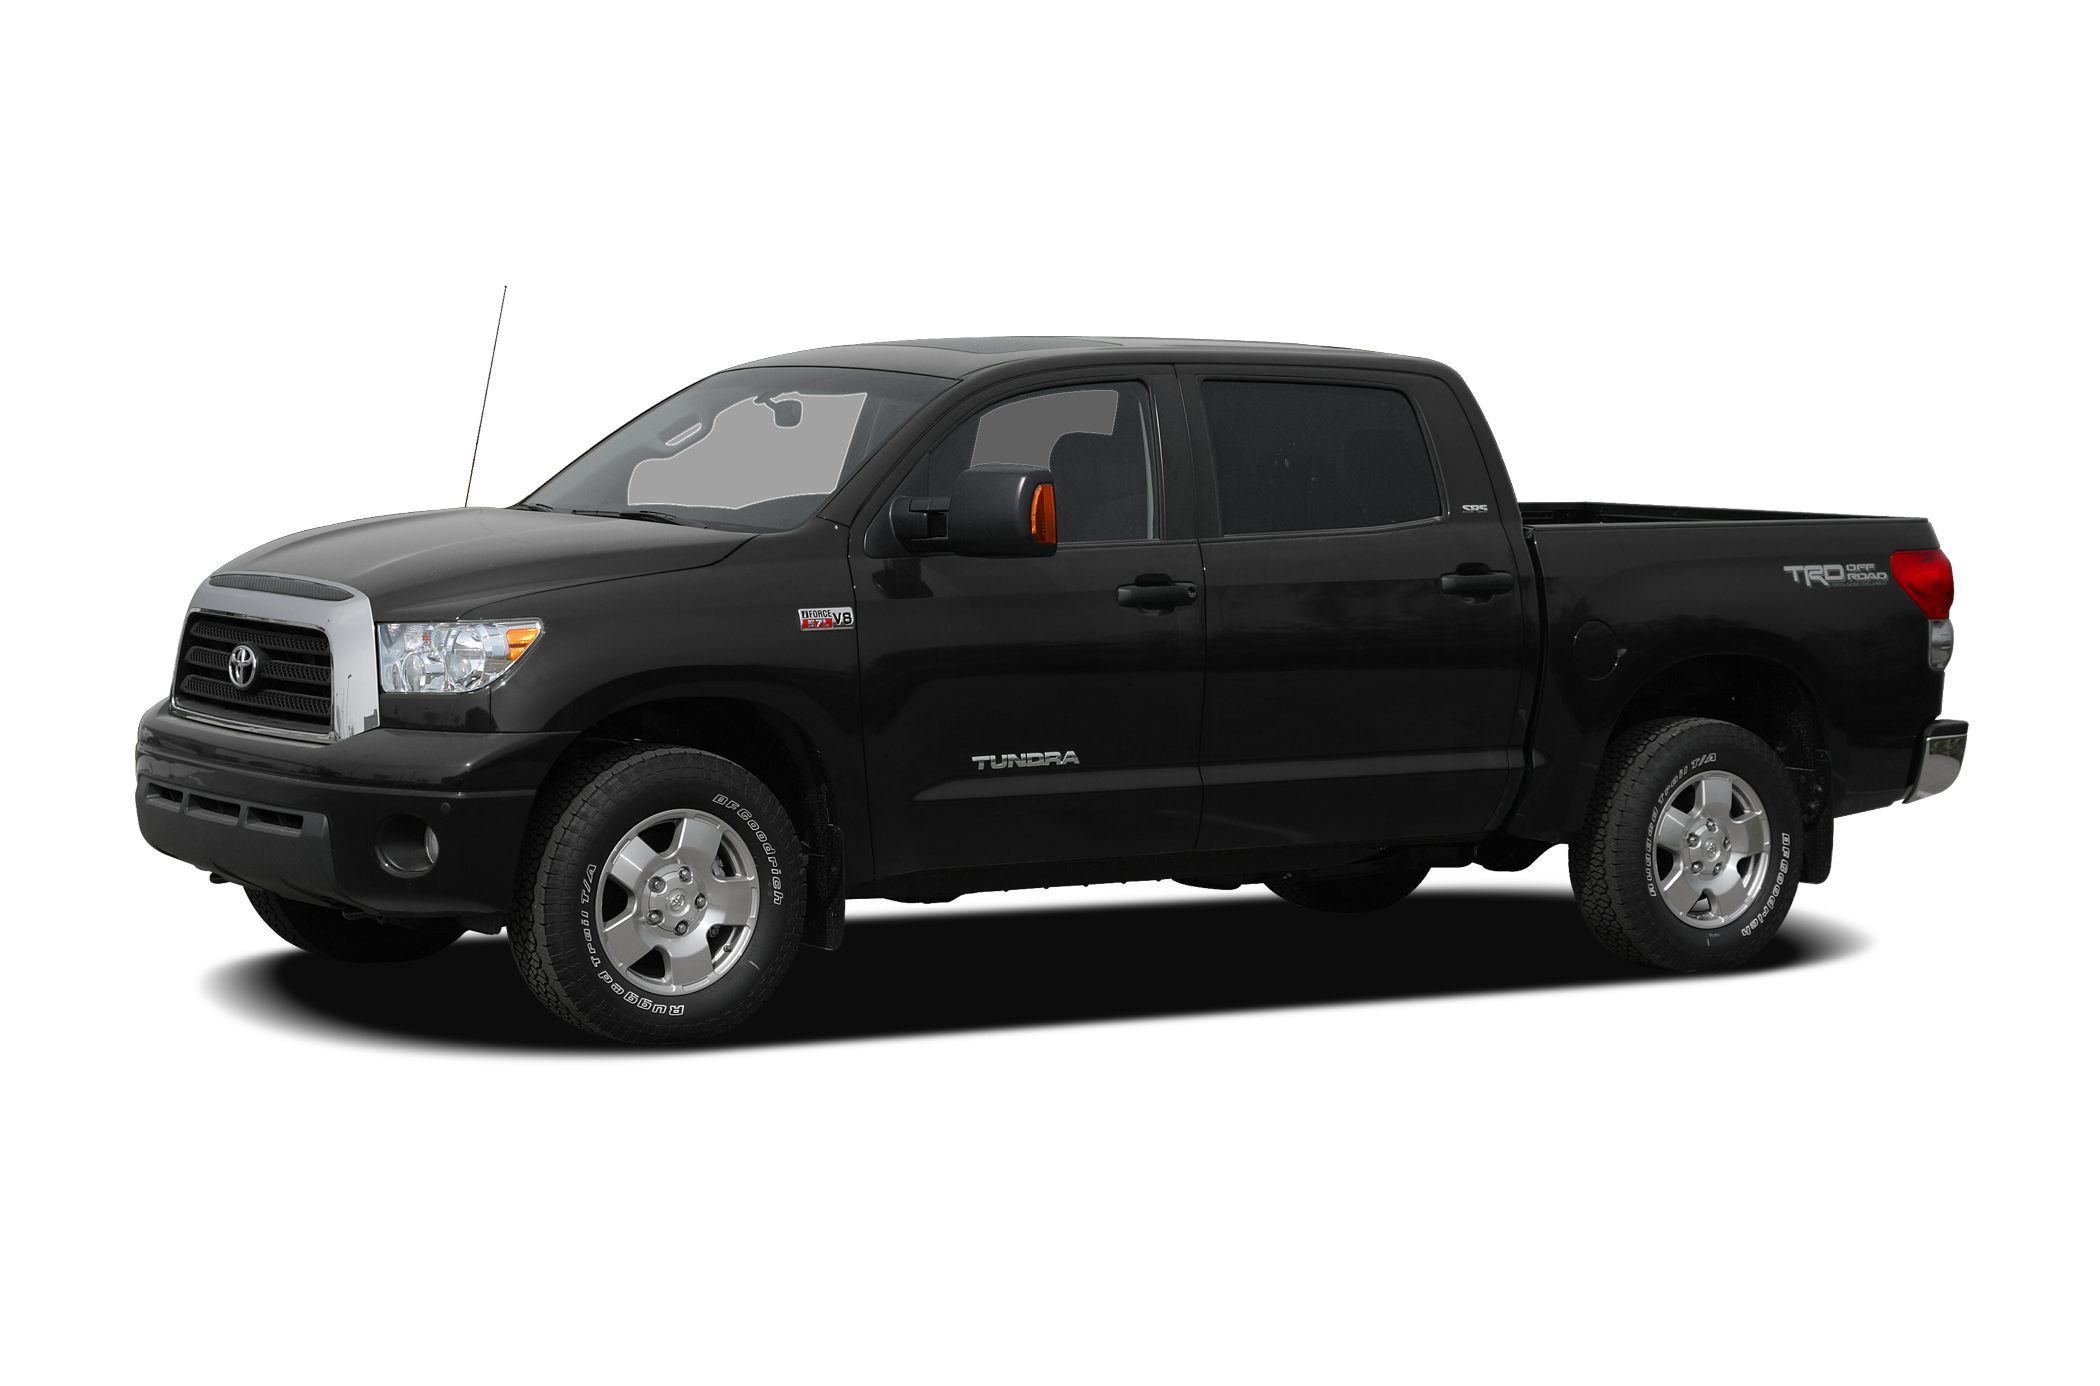 2008 Toyota Tundra Limited CrewMax Crew Cab Pickup for sale in Jackson for $28,000 with 115,450 miles